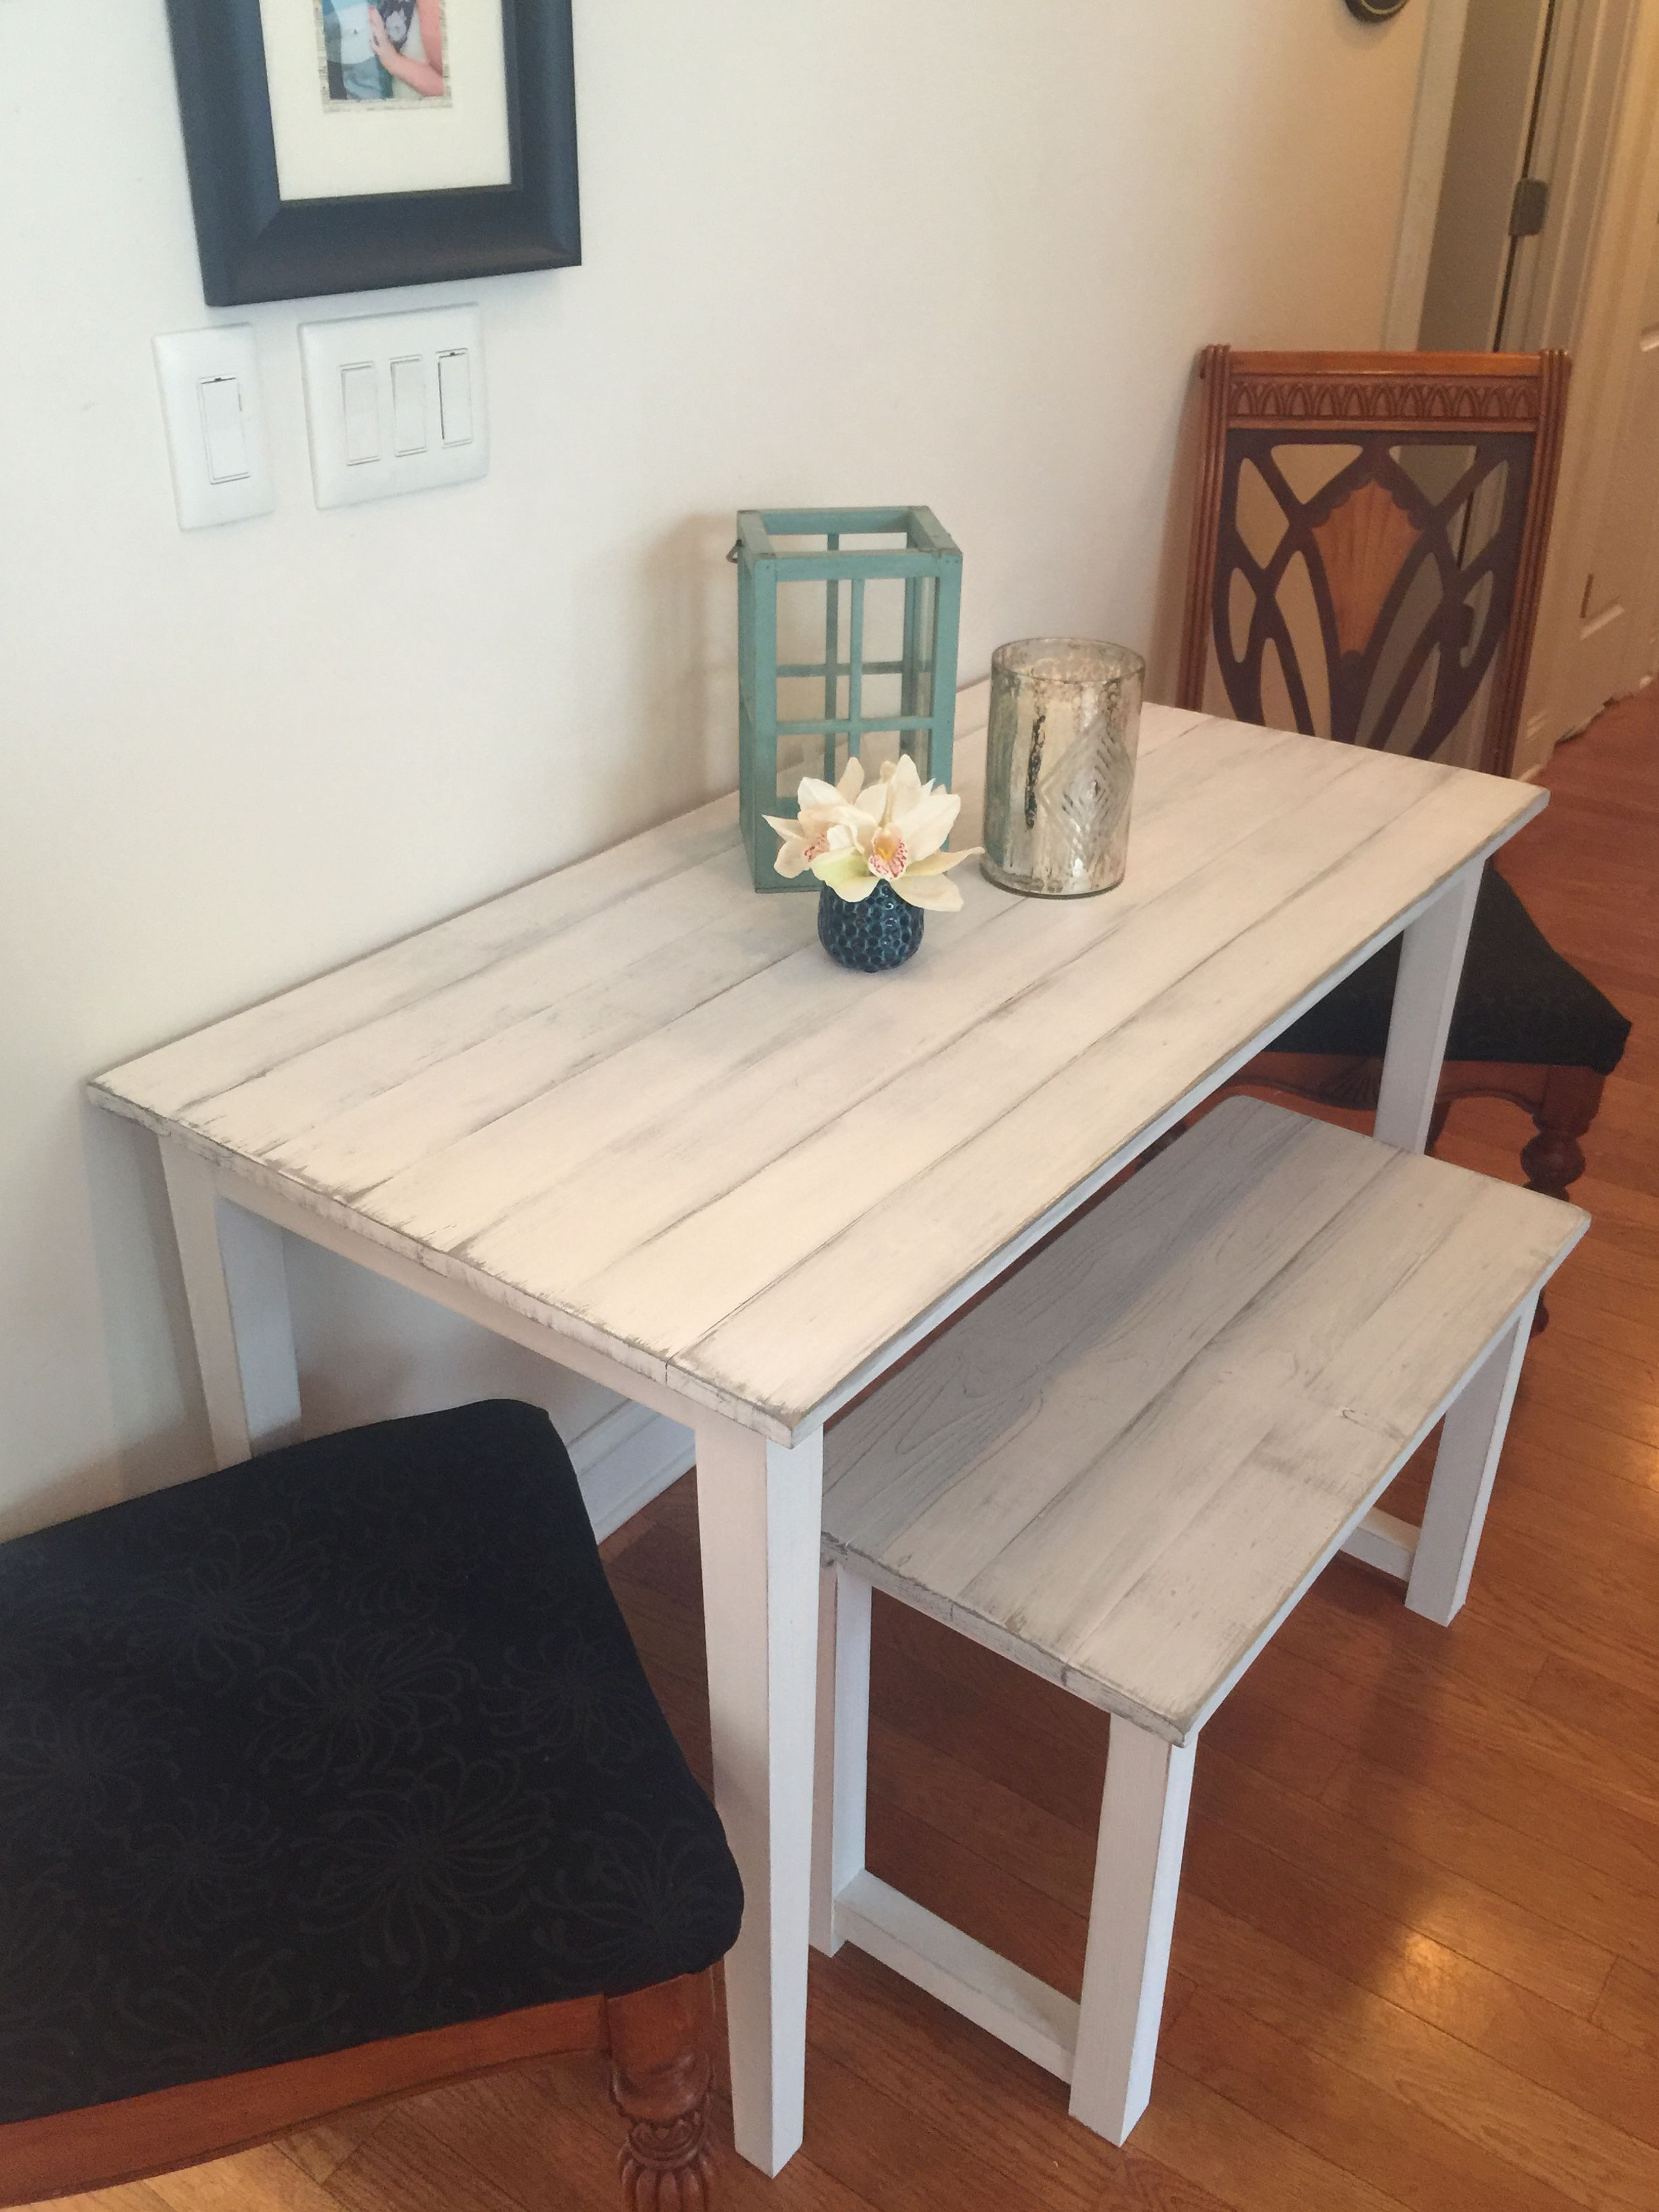 Prime Small Farmhouse Table For Small Room Bench And Distressed Machost Co Dining Chair Design Ideas Machostcouk